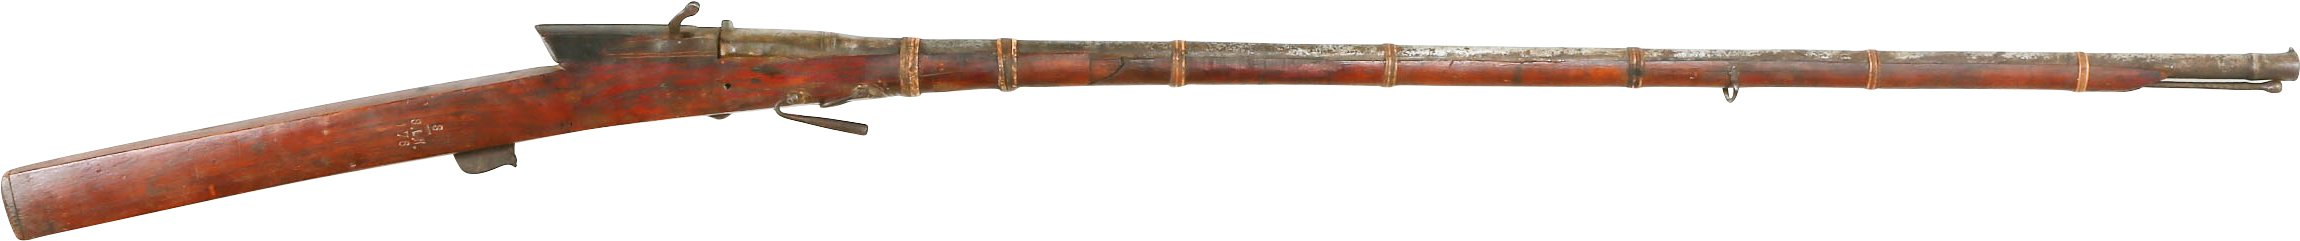 INDIAN MATCHLOCK MUSKET, 18TH CENTURY